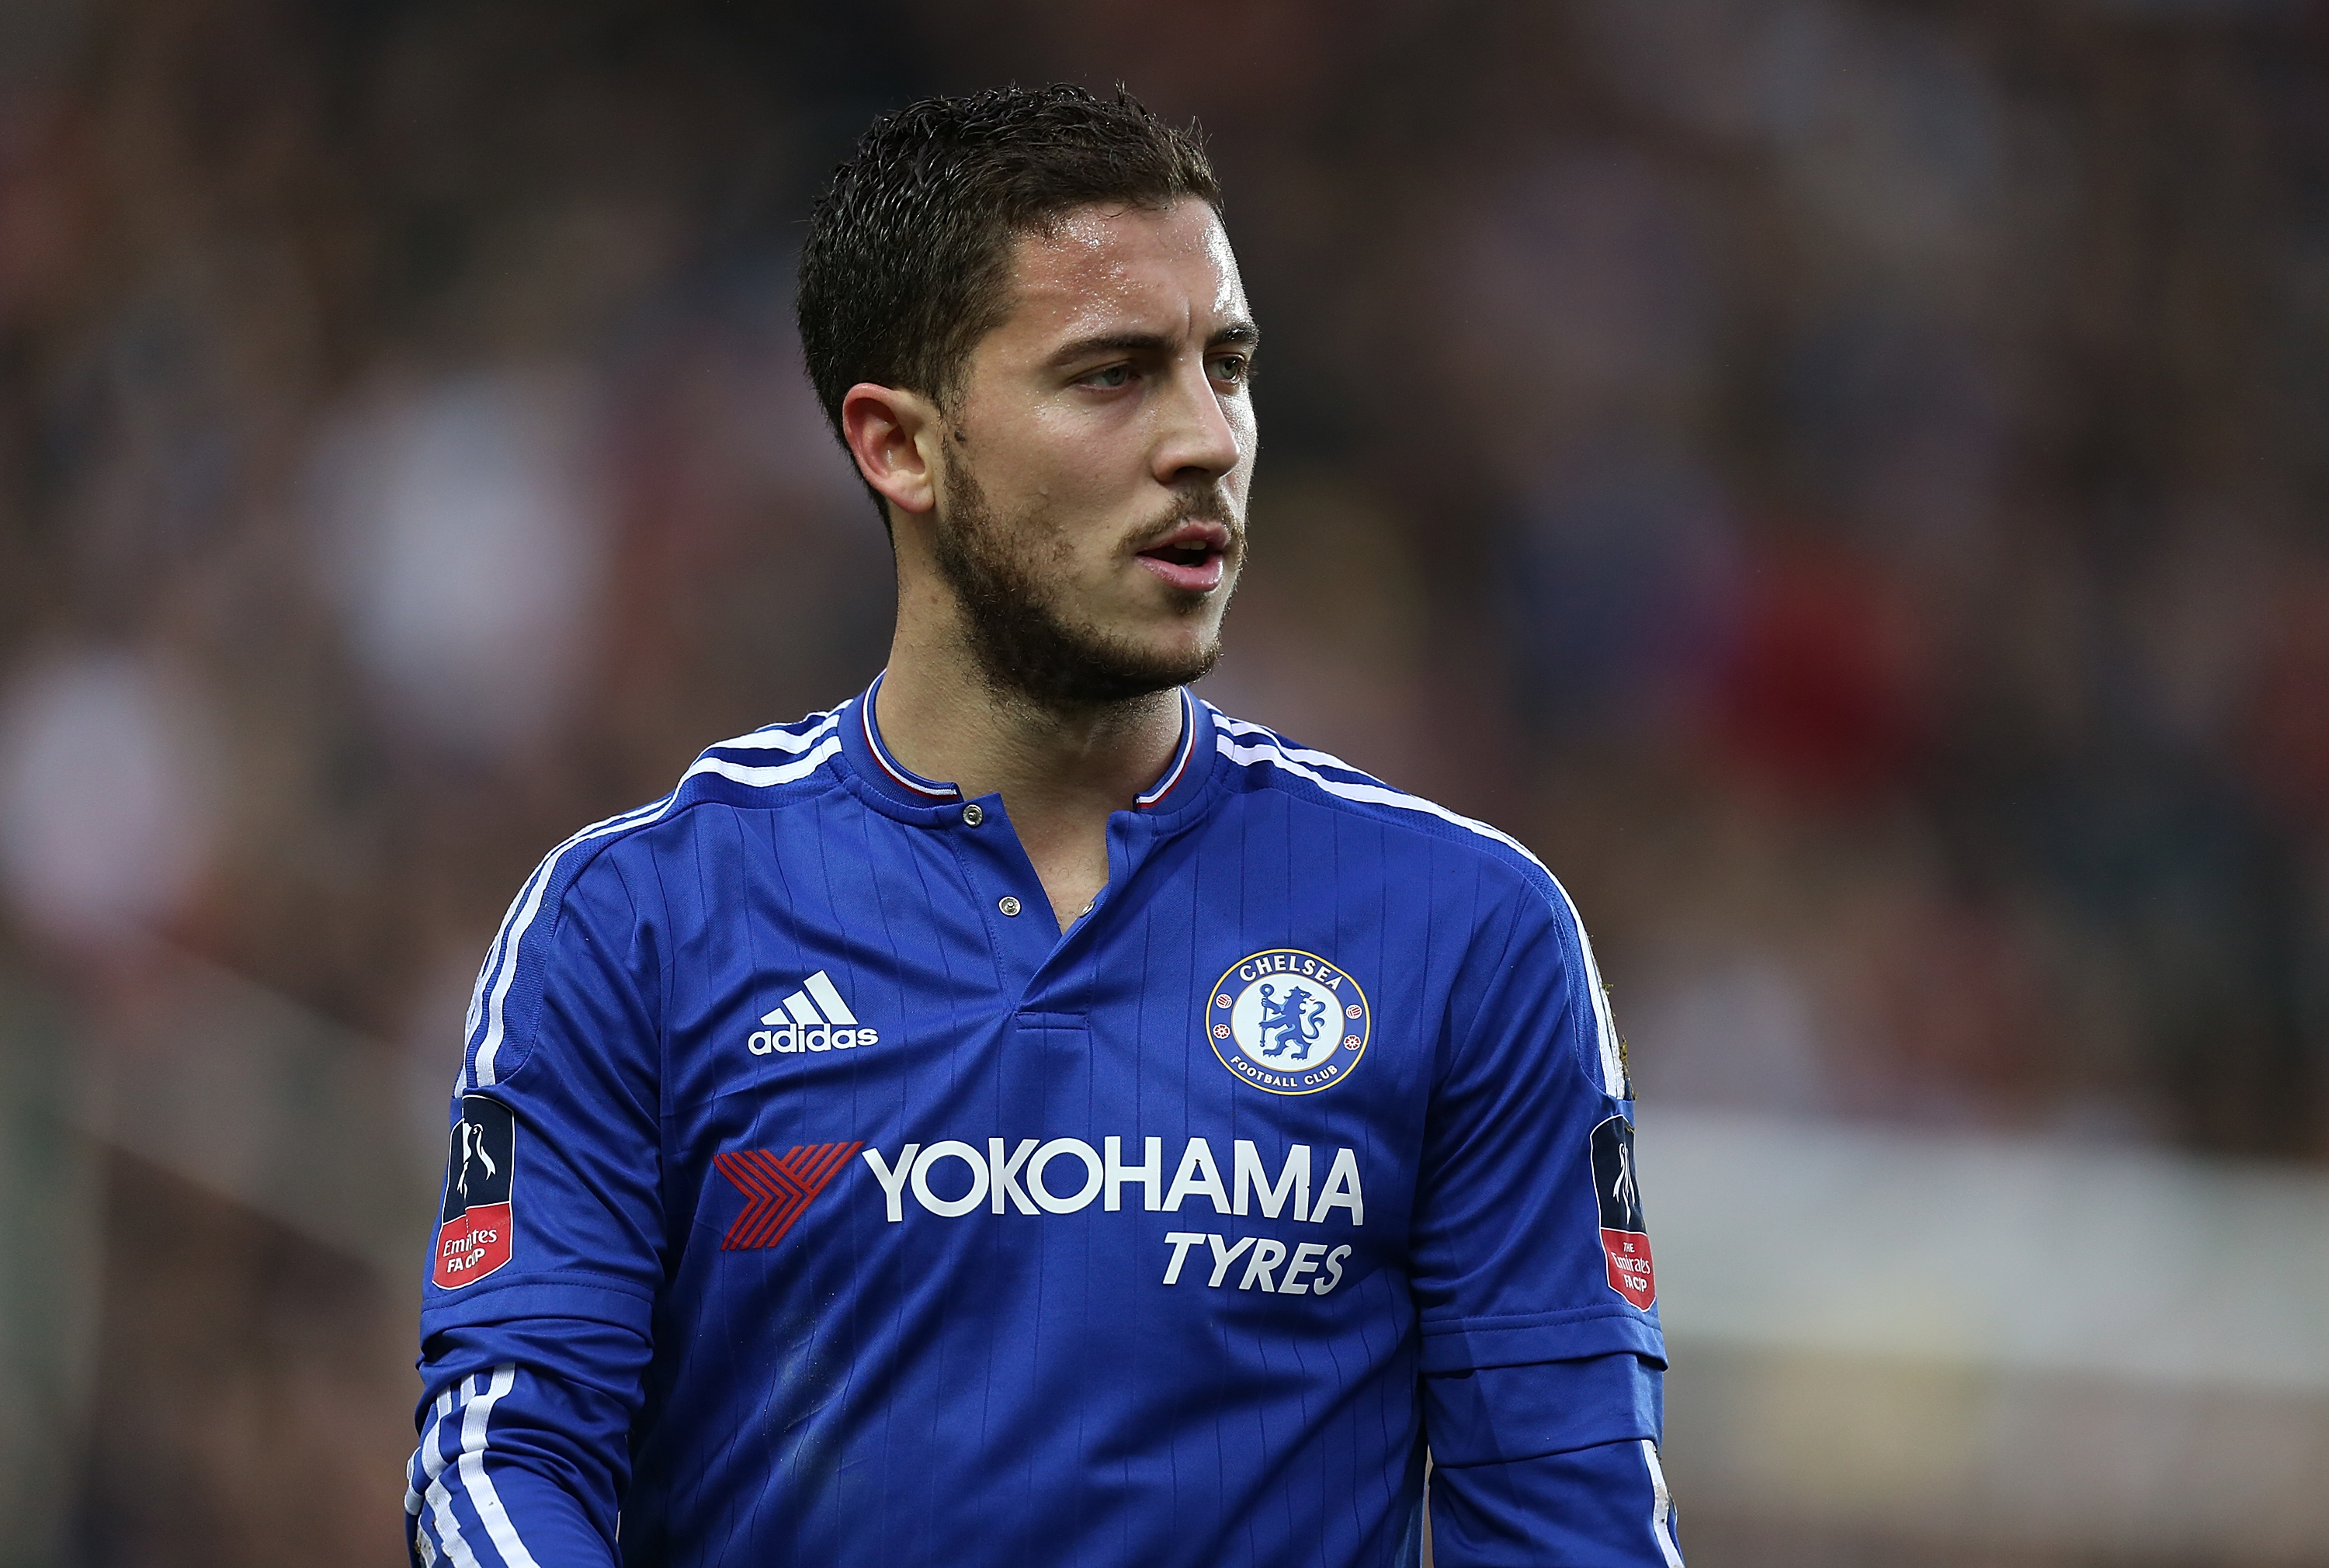 Eden Hazard will stay at Stamford Bridge if Real Madrid don't make an approach